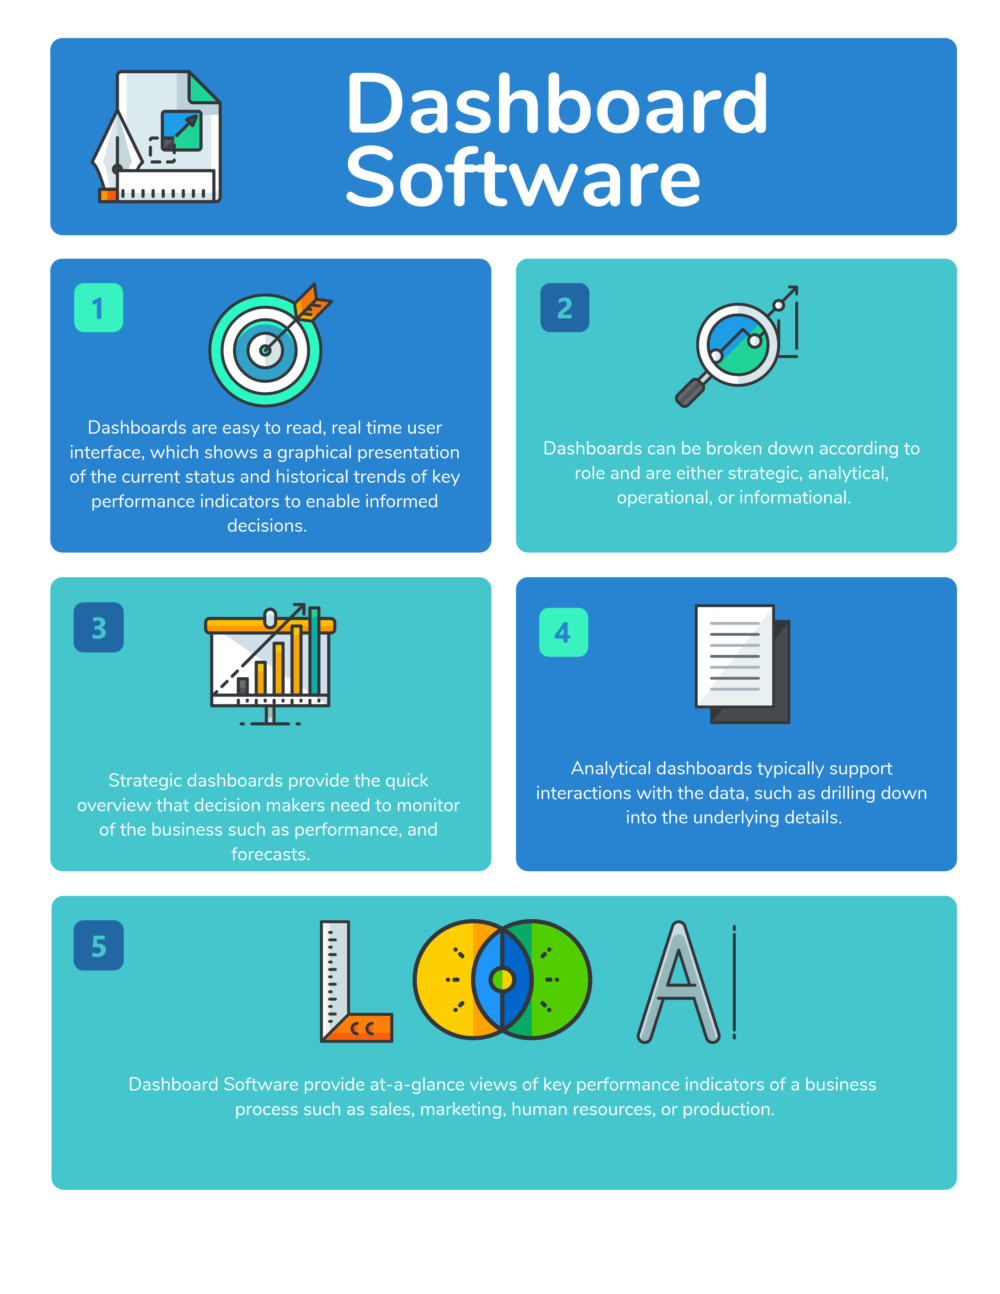 77 Open Source Free And Top Dashboard Software In 2020 Reviews Features Pricing Comparison Pat Research B2b Reviews Buying Guides Best Practices